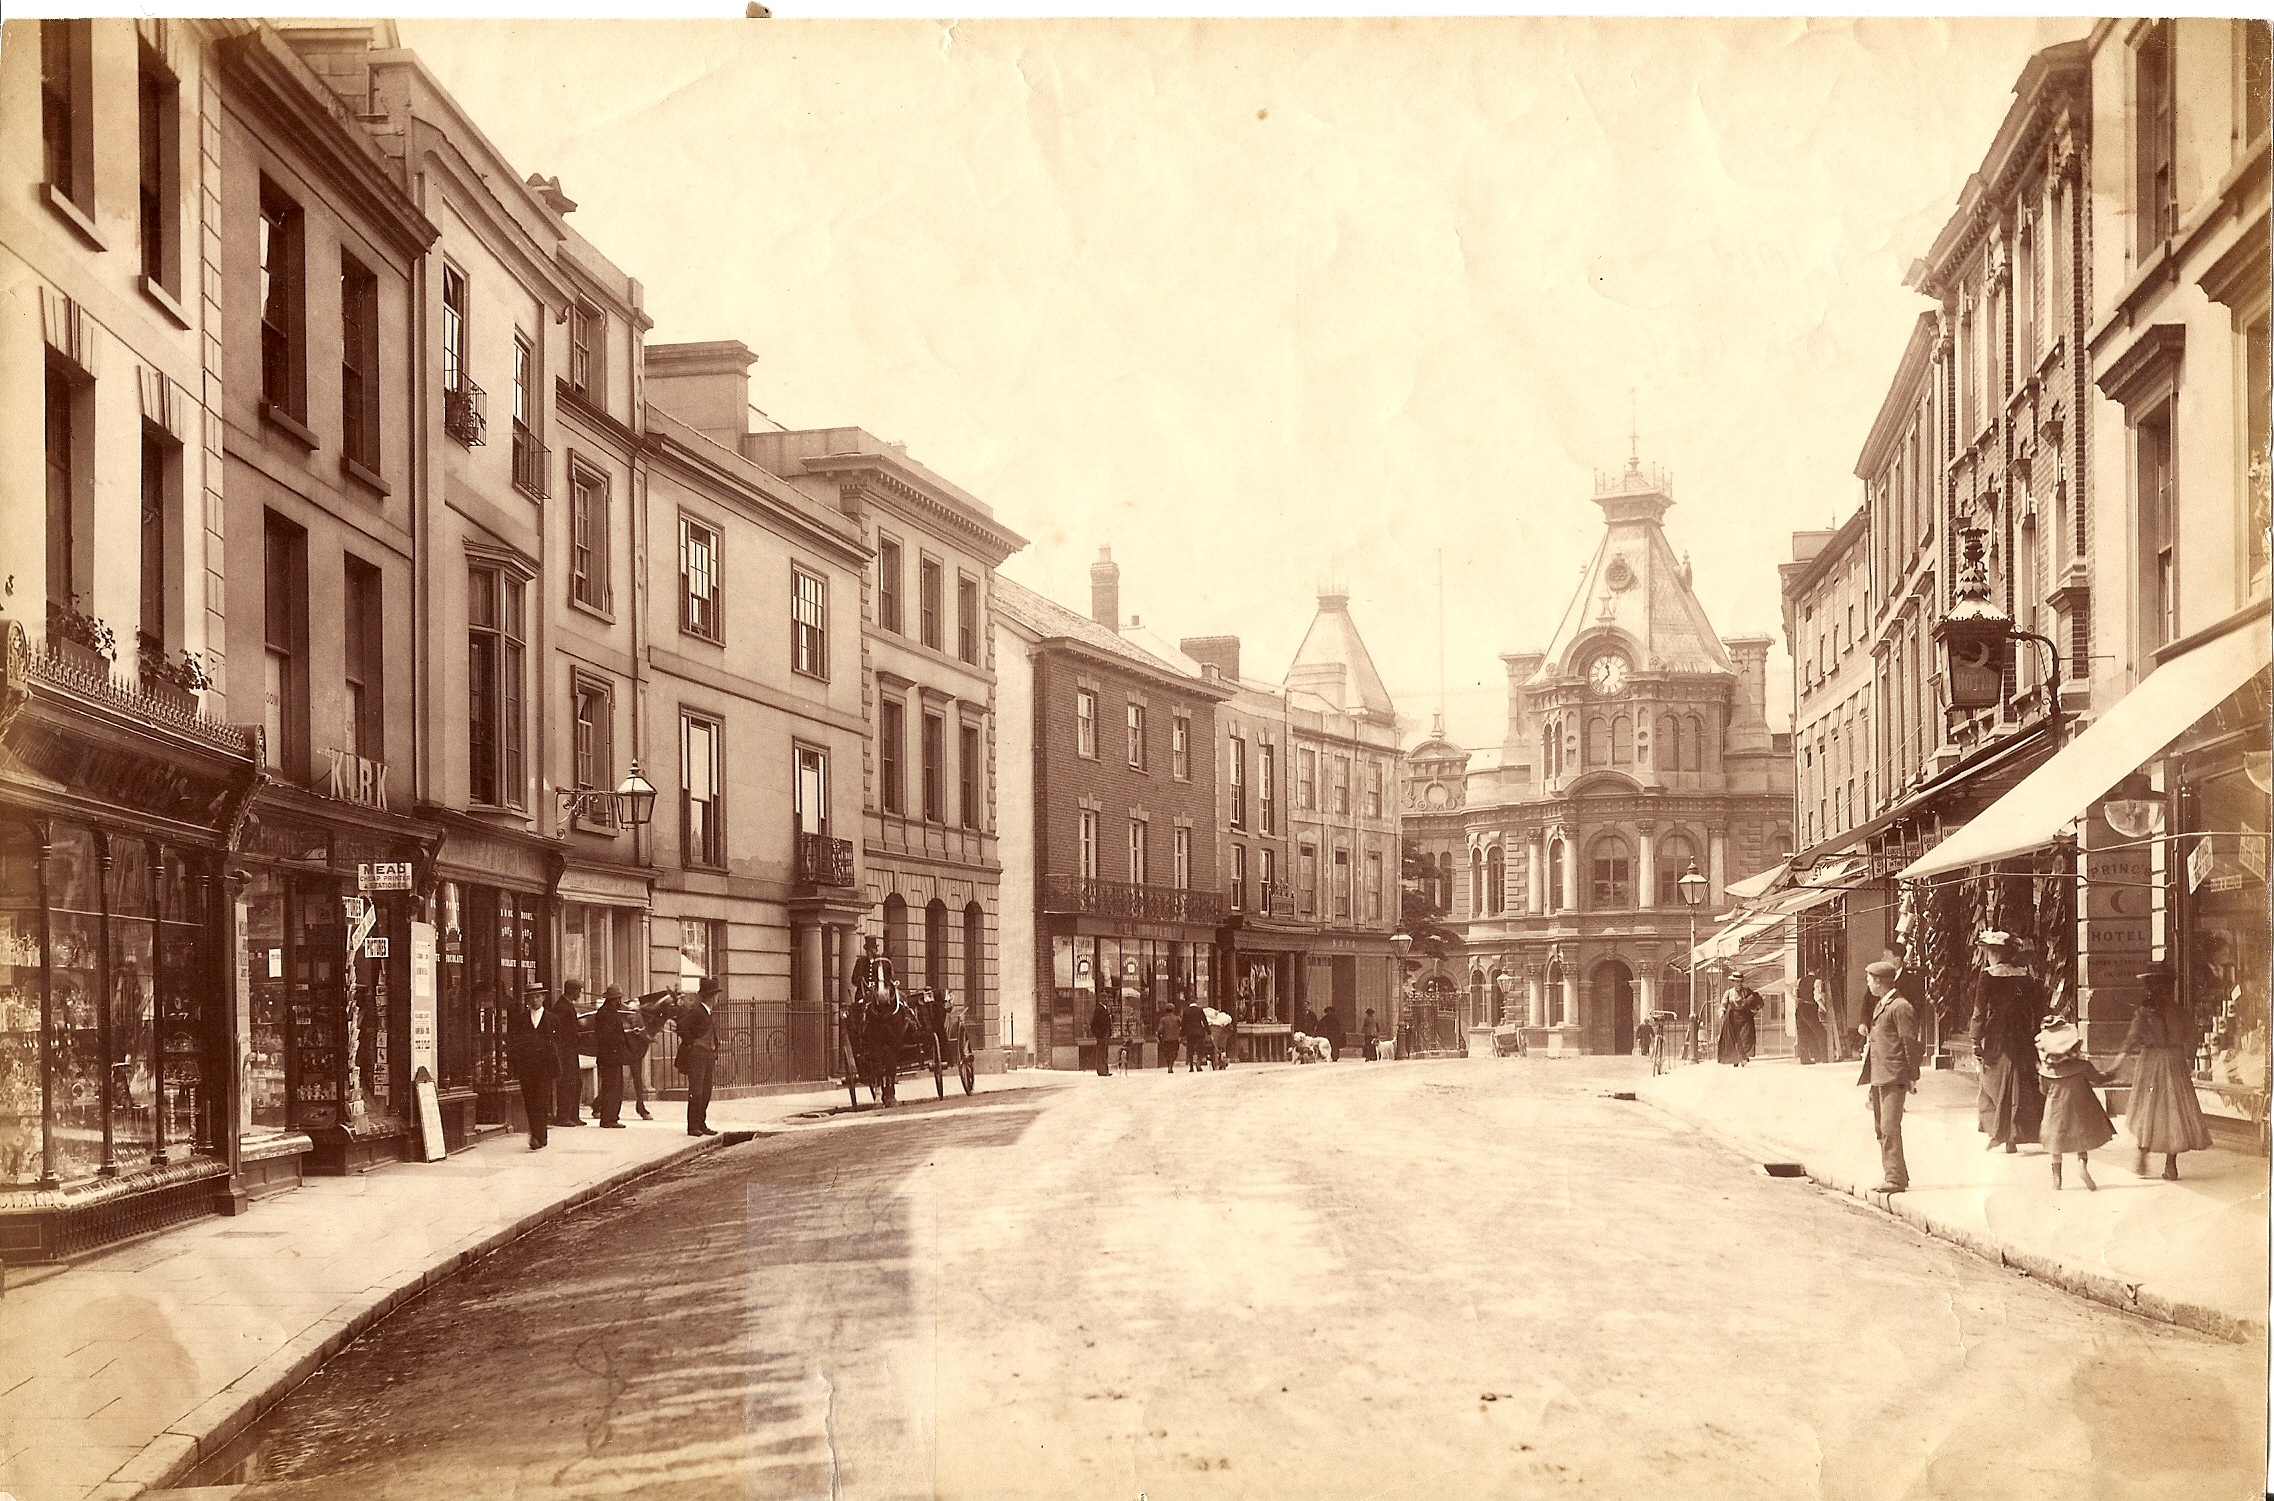 A view of Fore Street in 1900